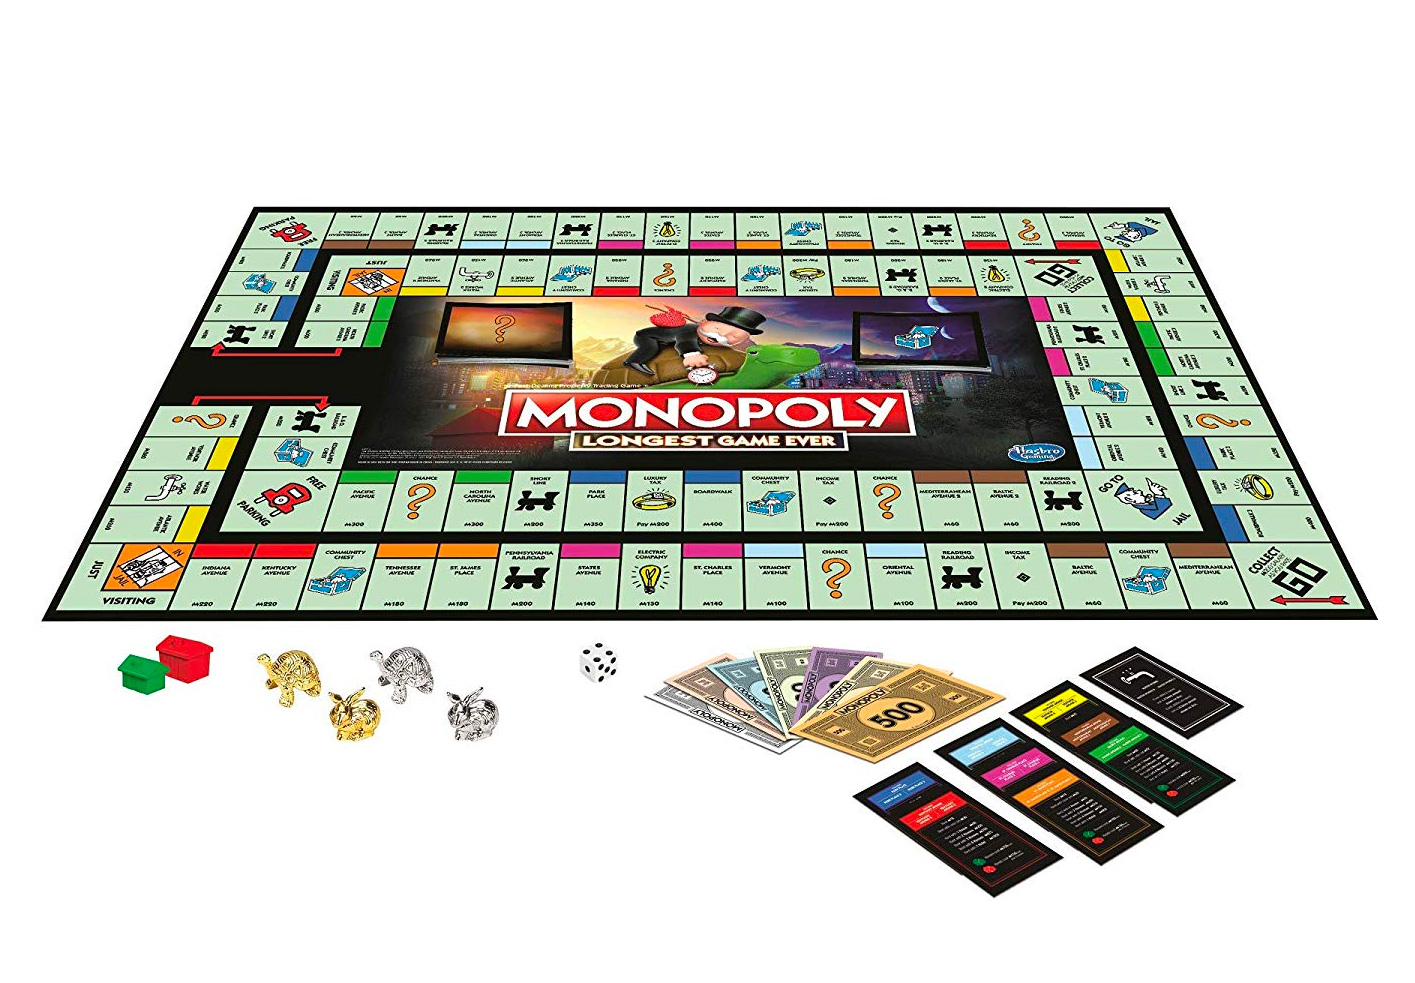 Host a Holiday Monopoly Marathon with the Longest Game Ever at werd.com